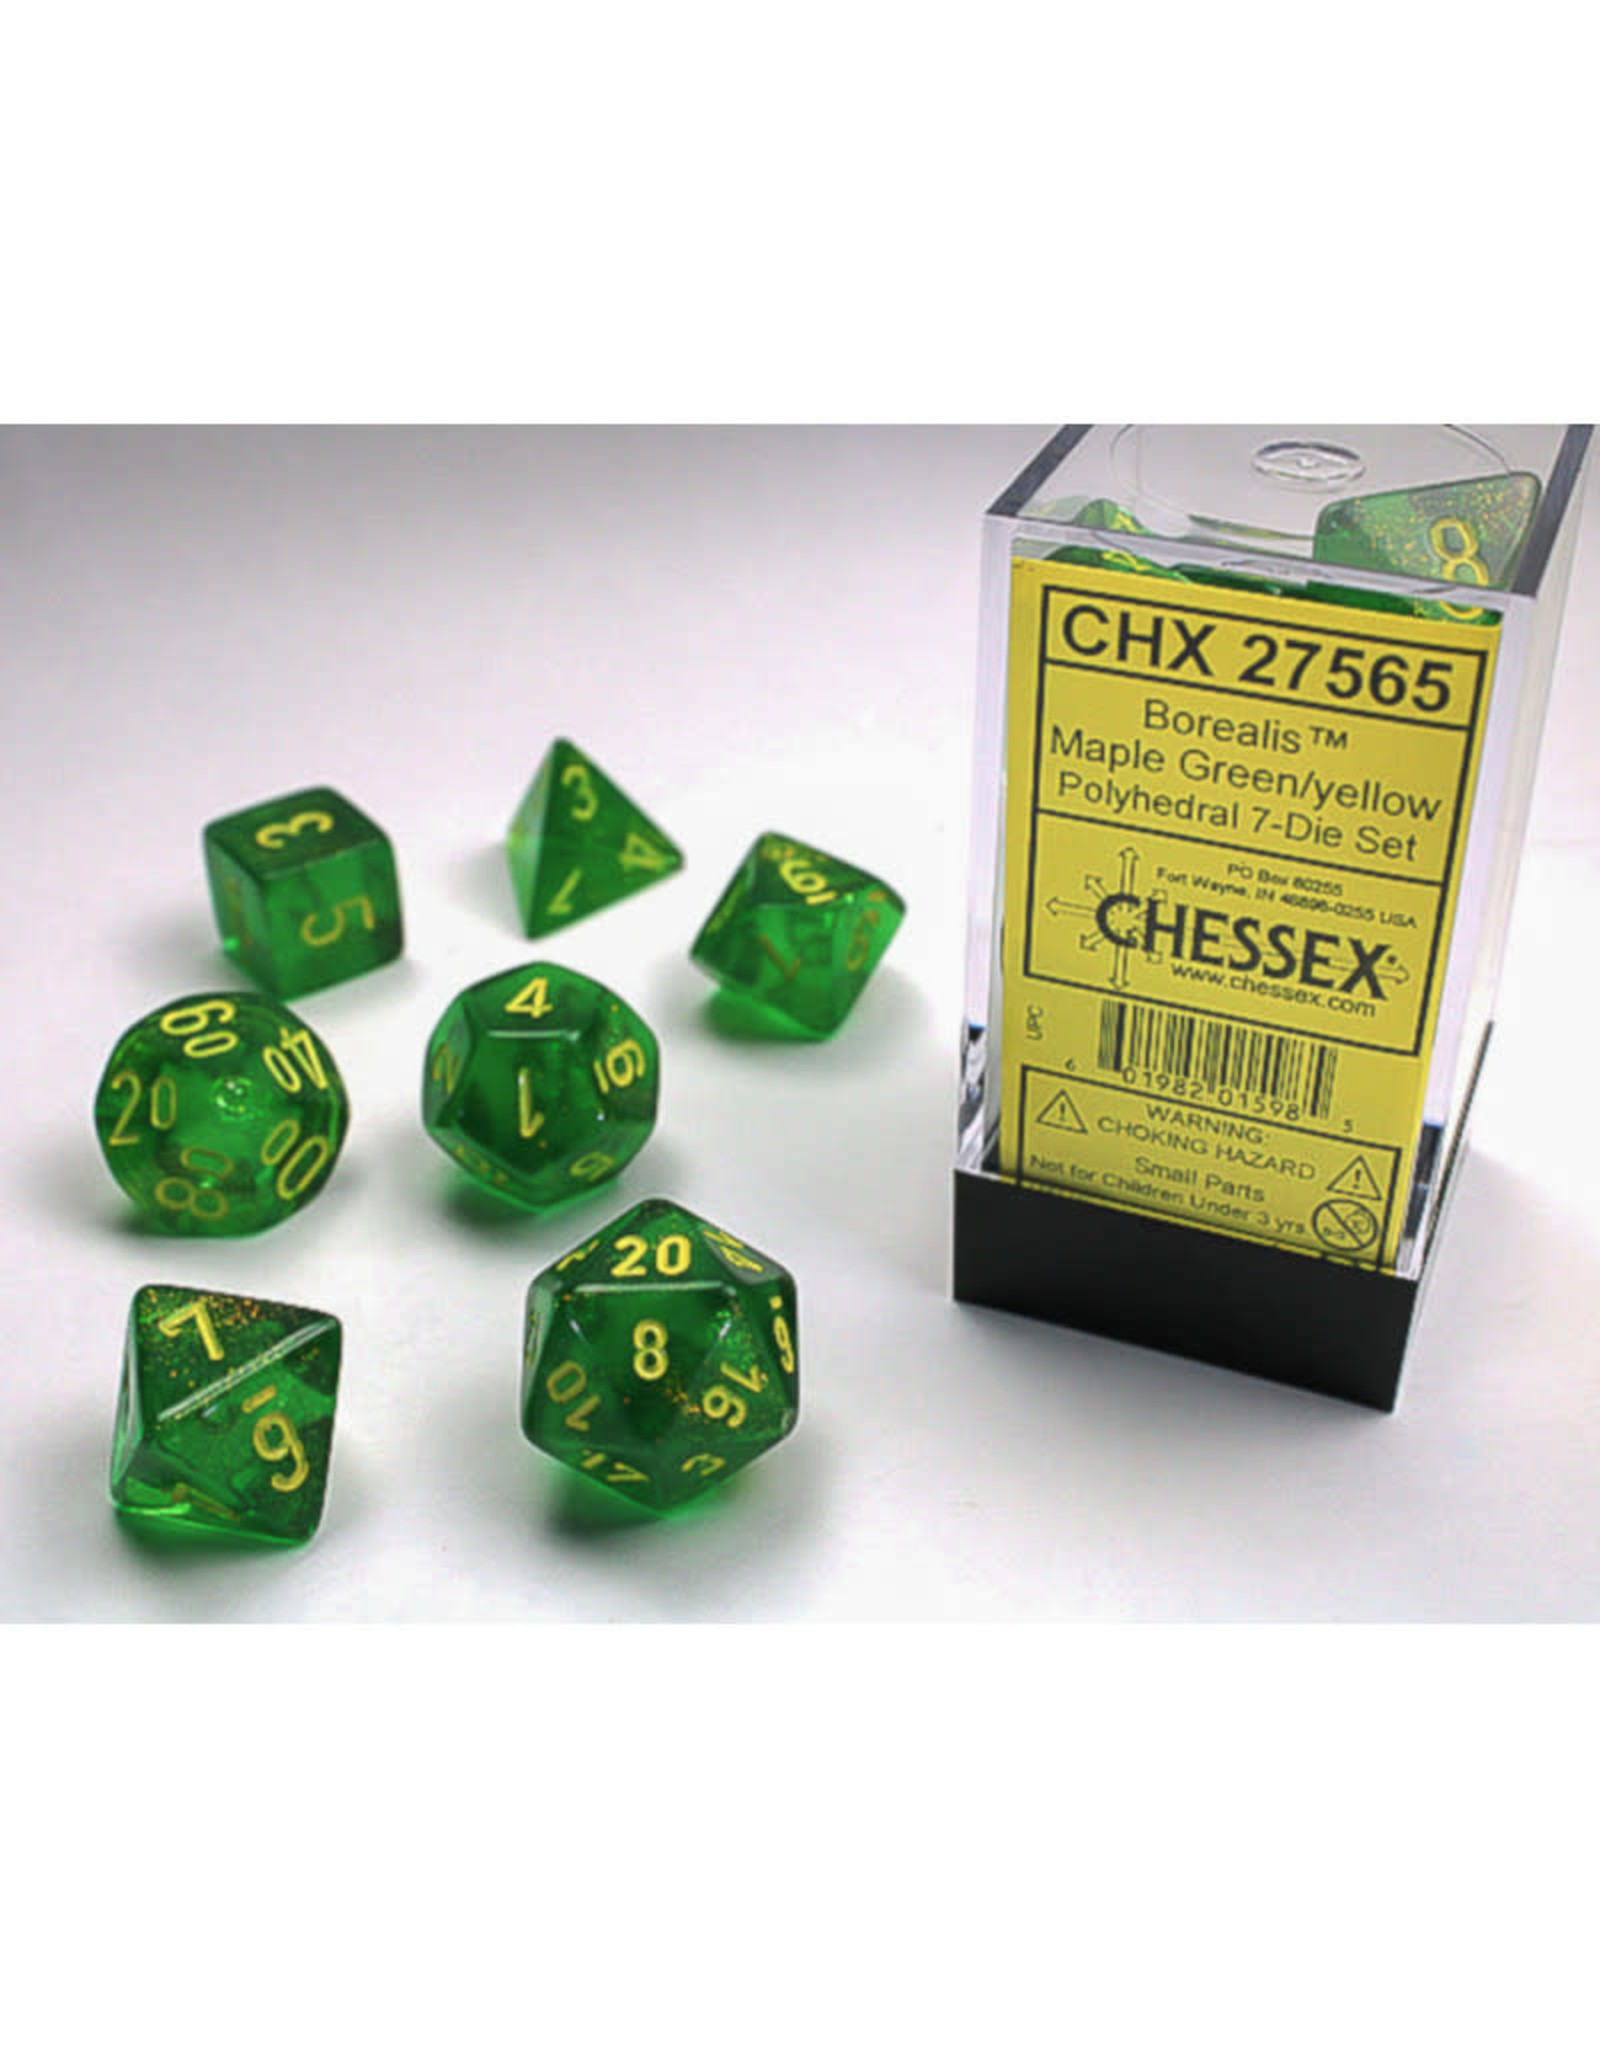 Chessex Polyhedral Dice Set: Menagerie Borealis Maple Green/Yellow (7)